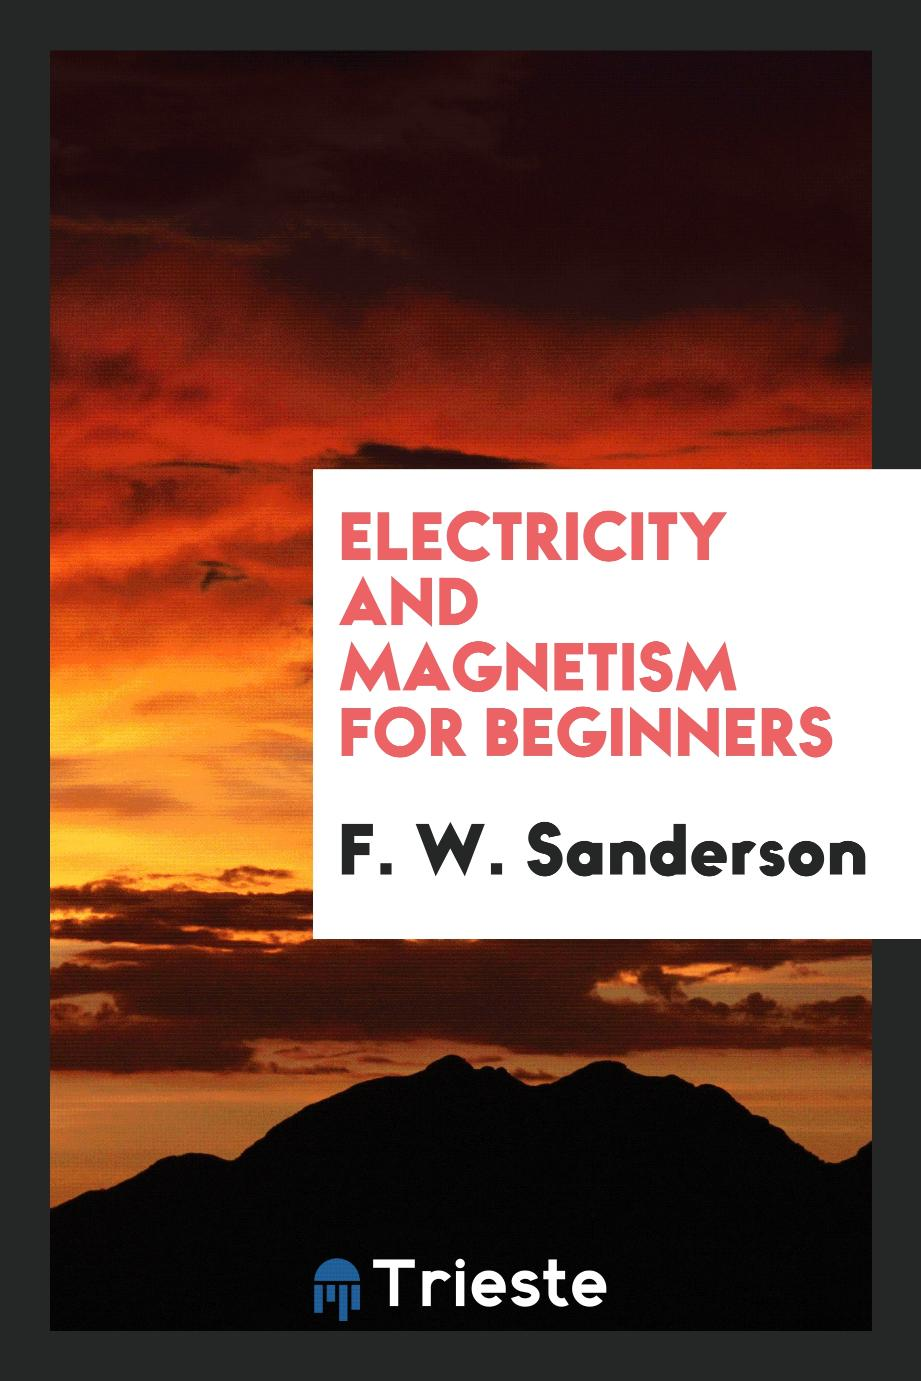 Electricity and magnetism for beginners